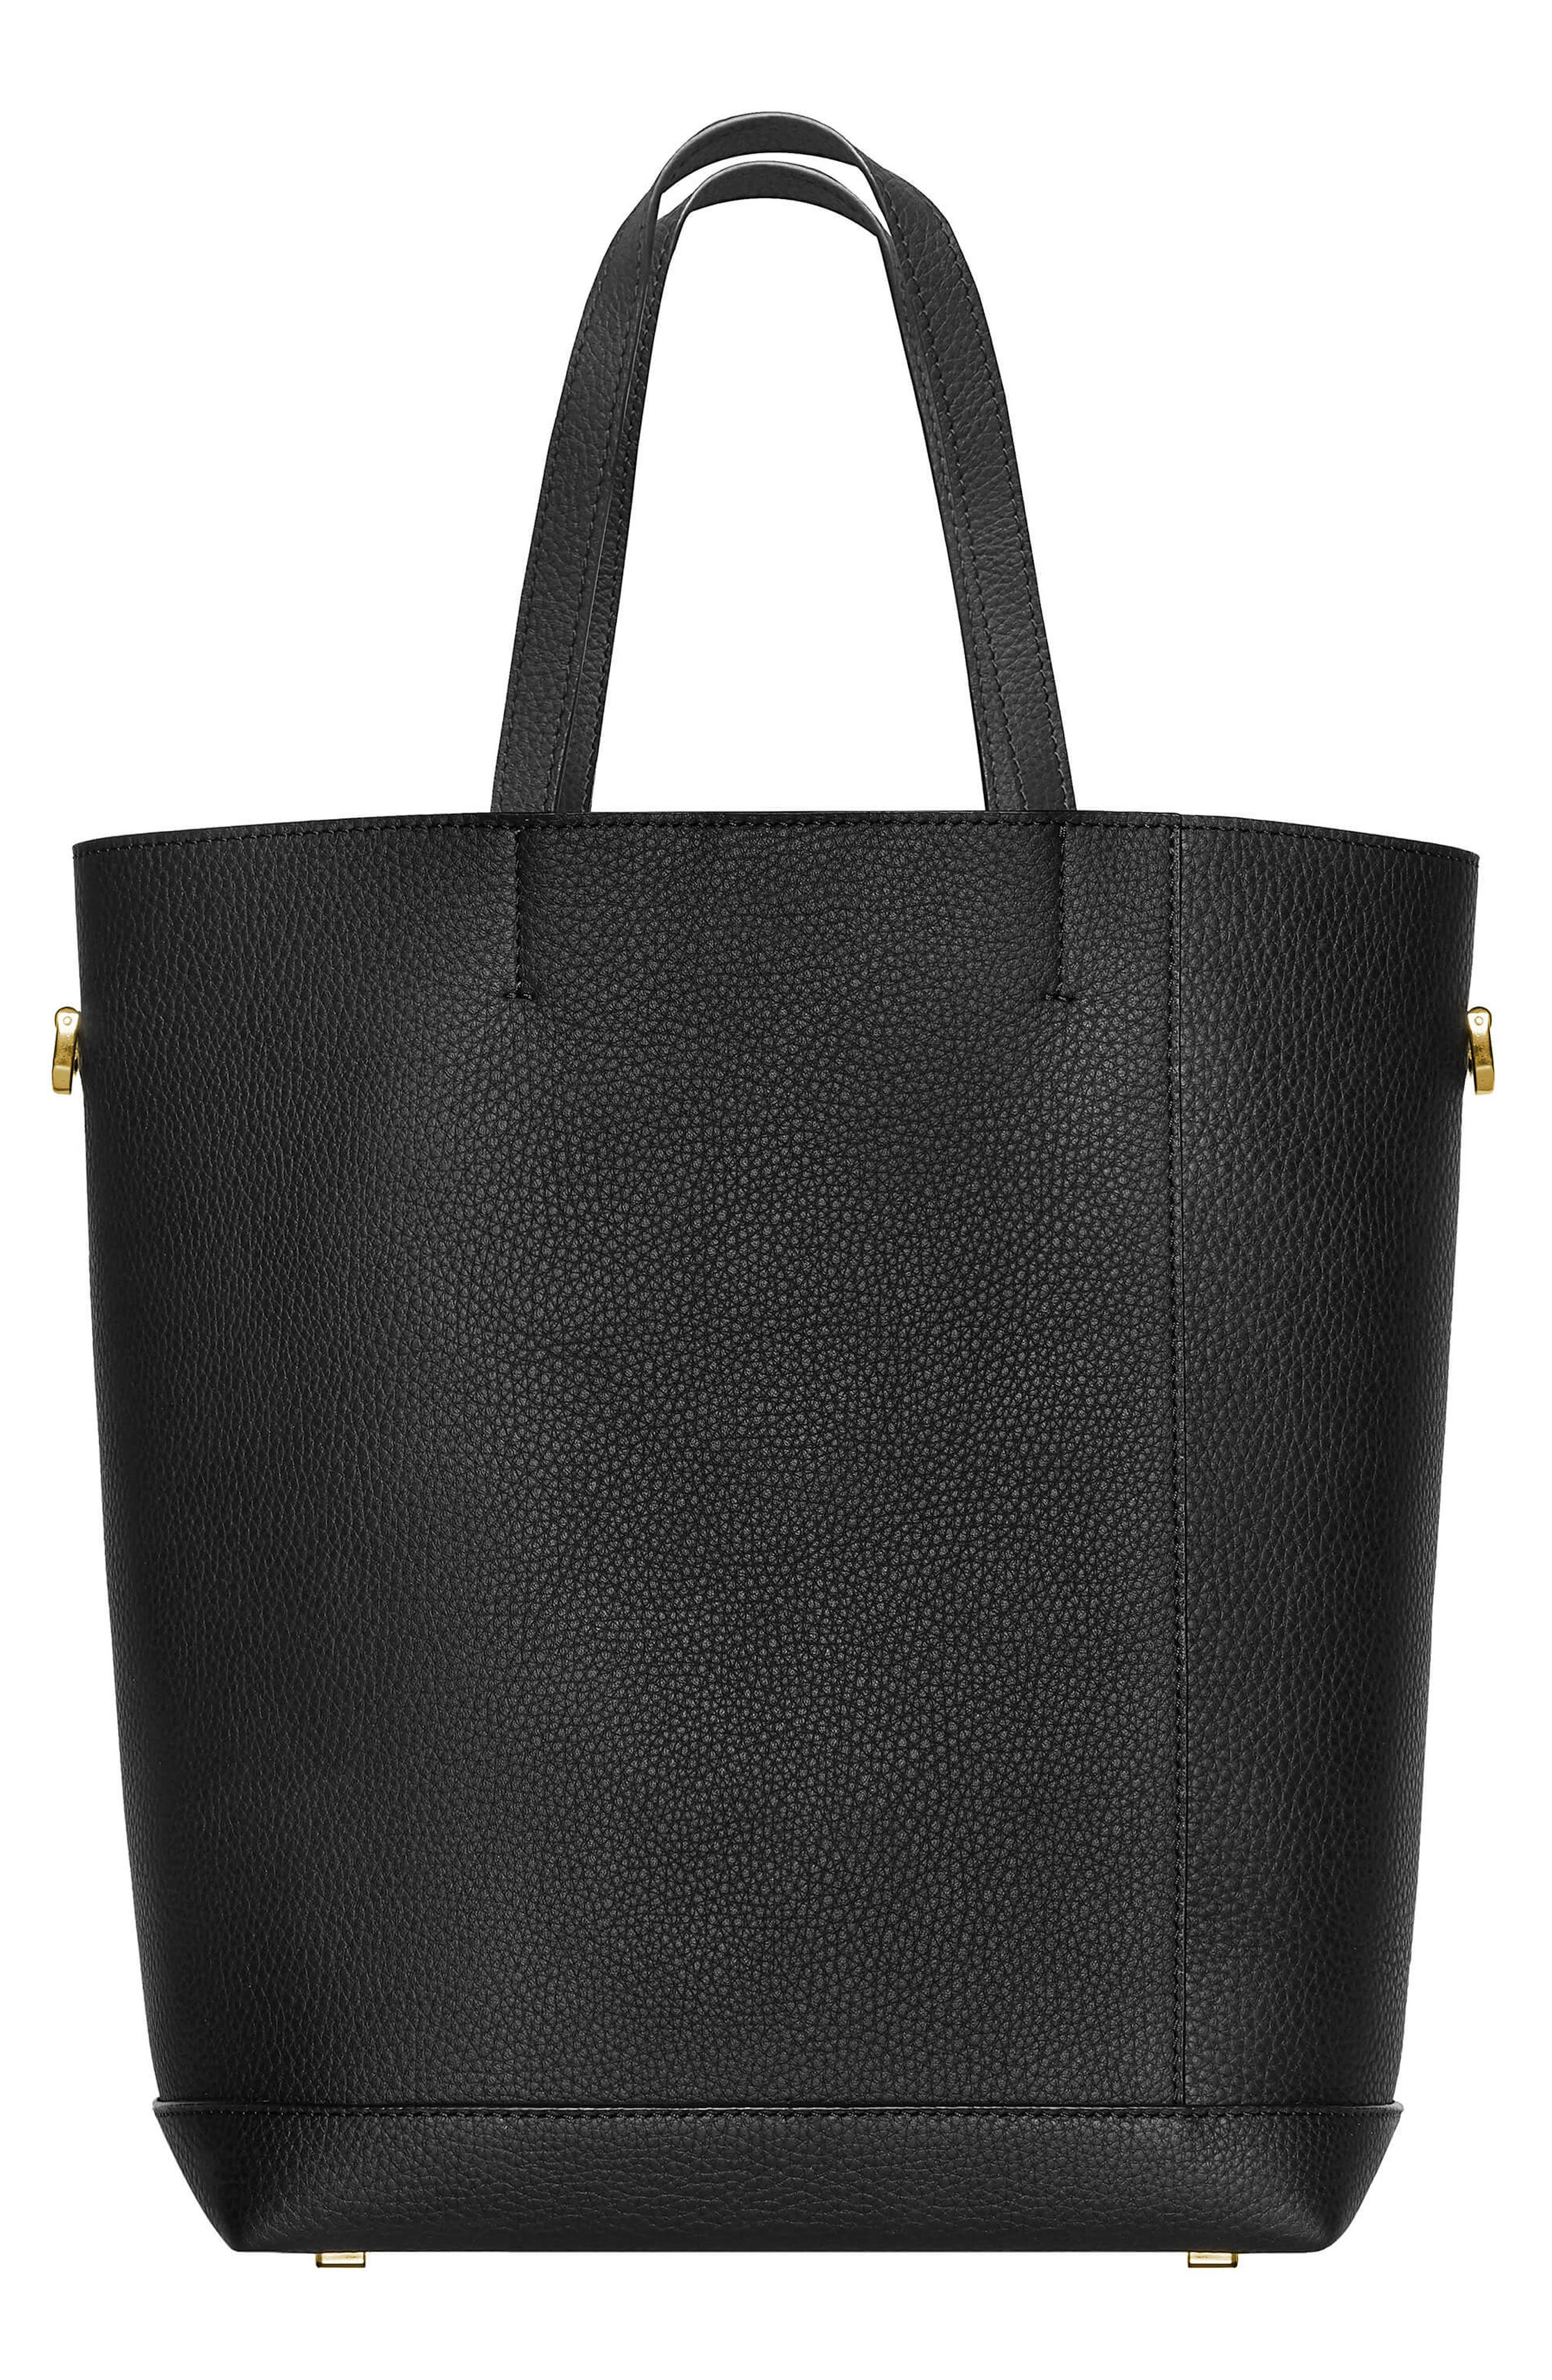 Lyon Water Repellent Leather Tote,                             Alternate thumbnail 3, color,                             BLACK